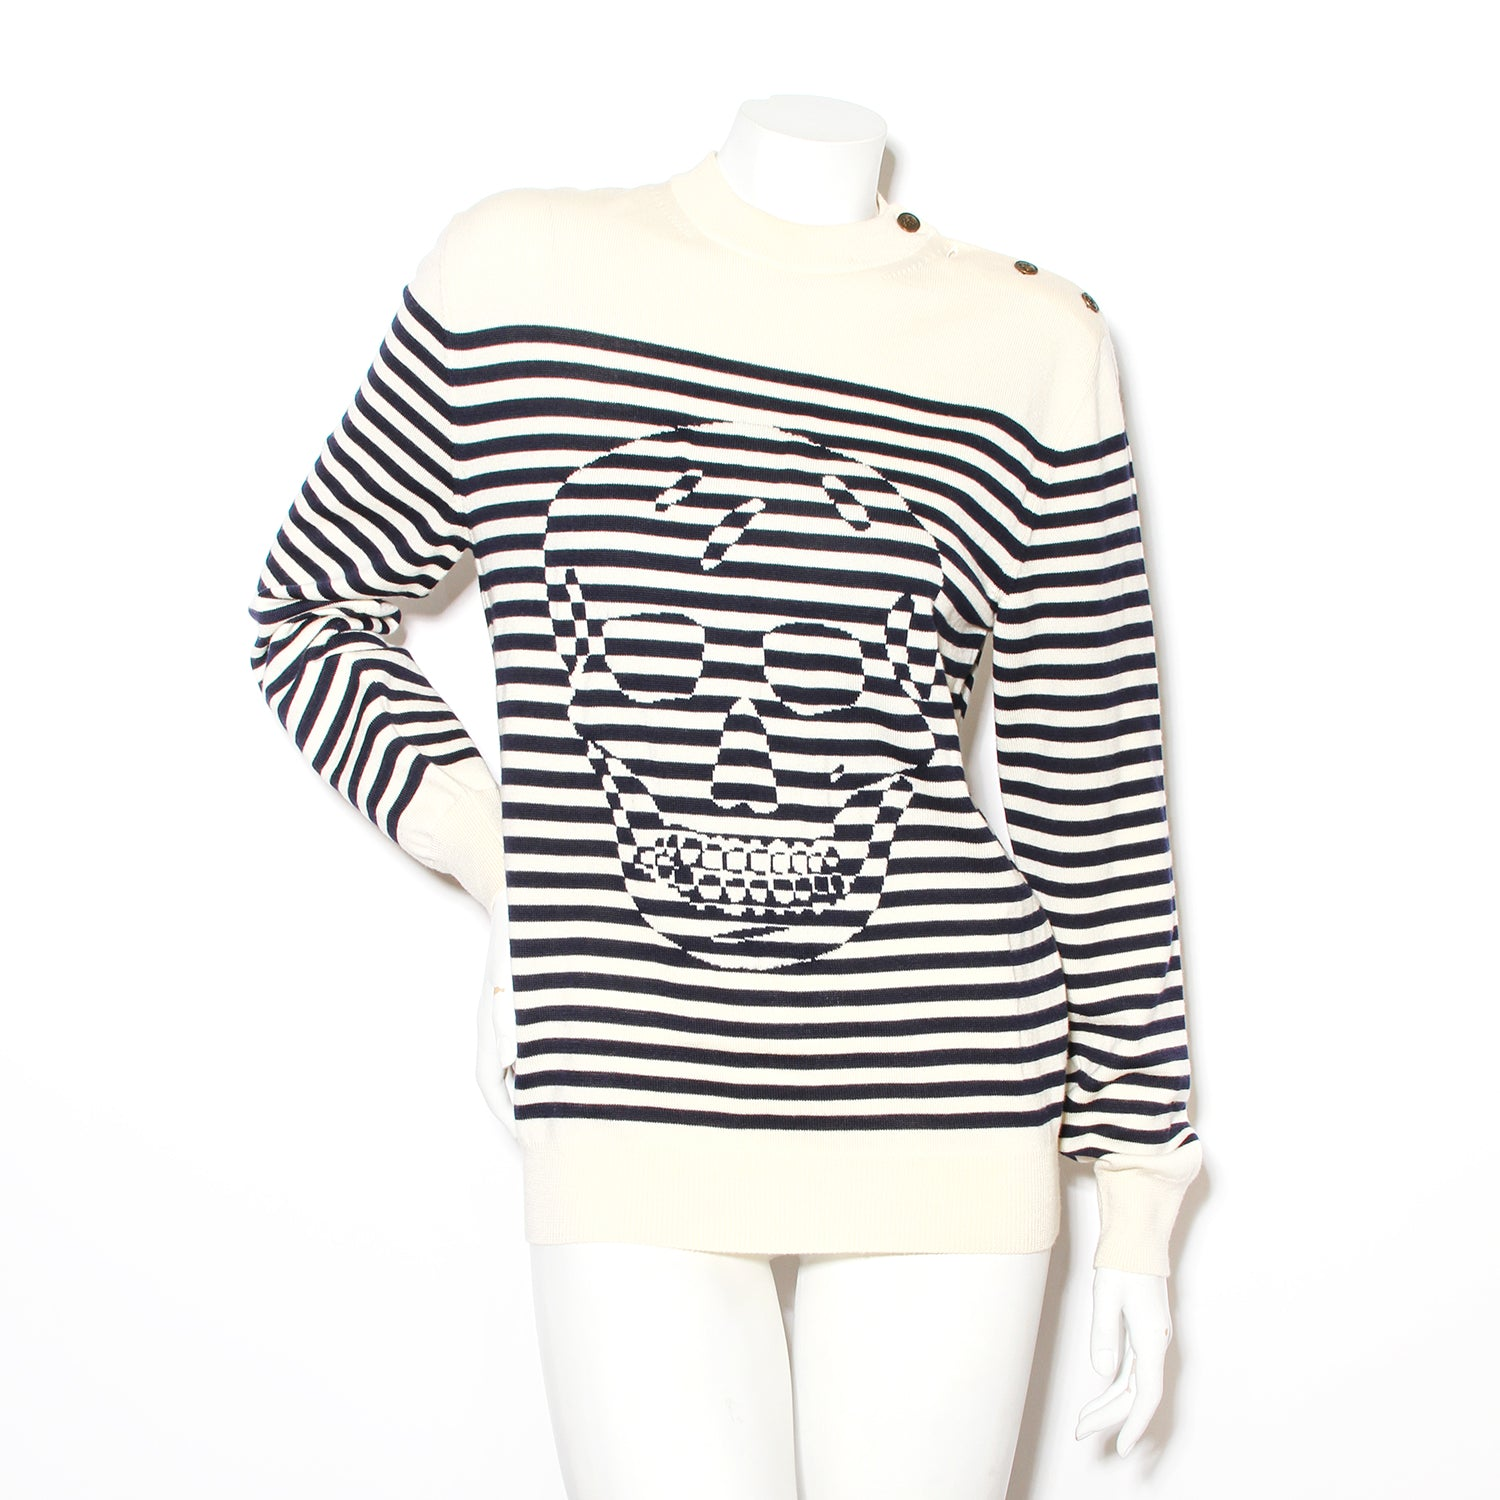 McQueen Skull Stripe Sweater